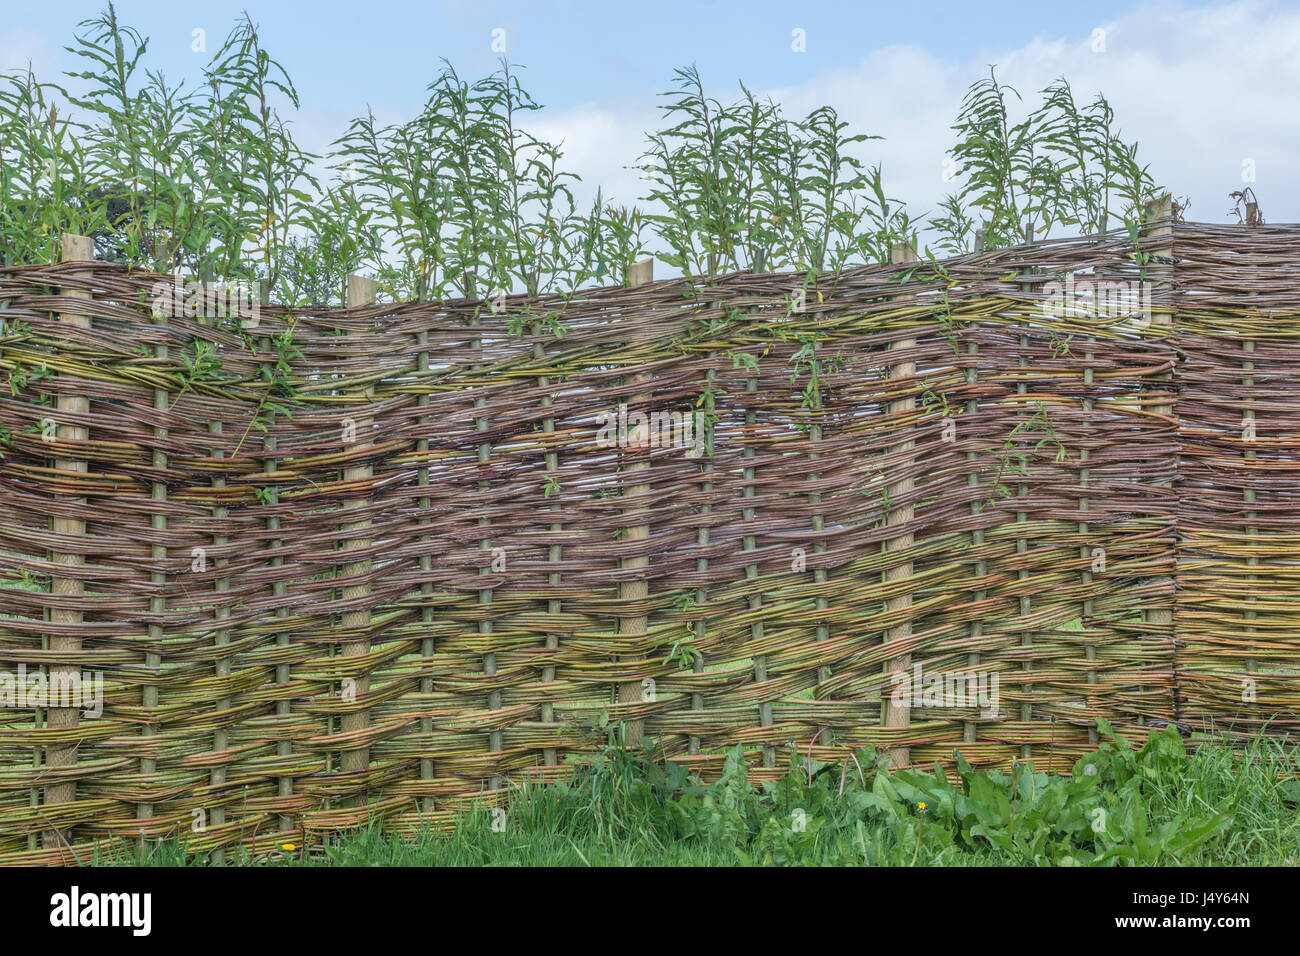 Environmentally friendly living willow fence structure   falls into both  natural world and concepts of barriersWillow Fence Stock Photos   Willow Fence Stock Images   Alamy. Living Willow Fence Panels. Home Design Ideas